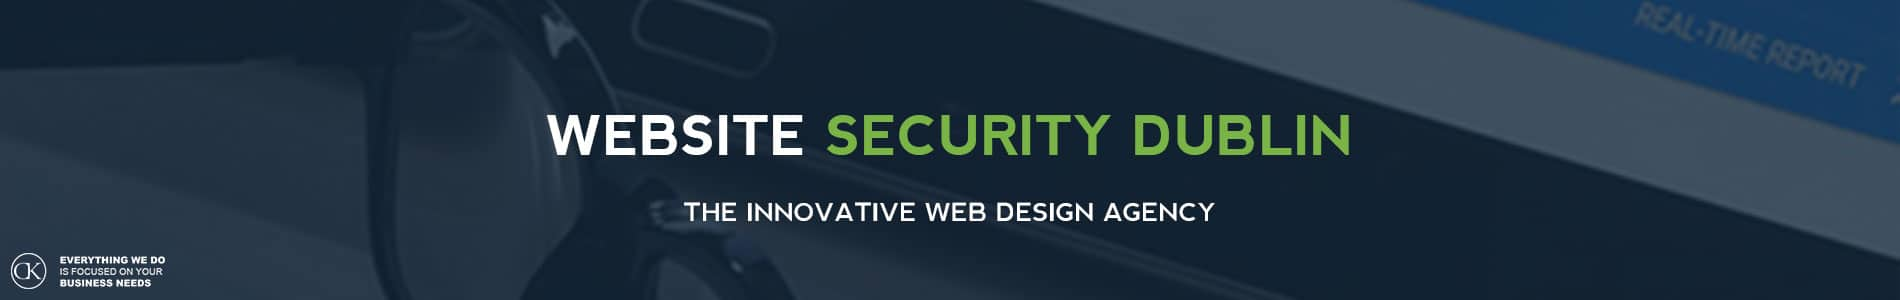 website security DUBLIN - FEATURED IMAGE